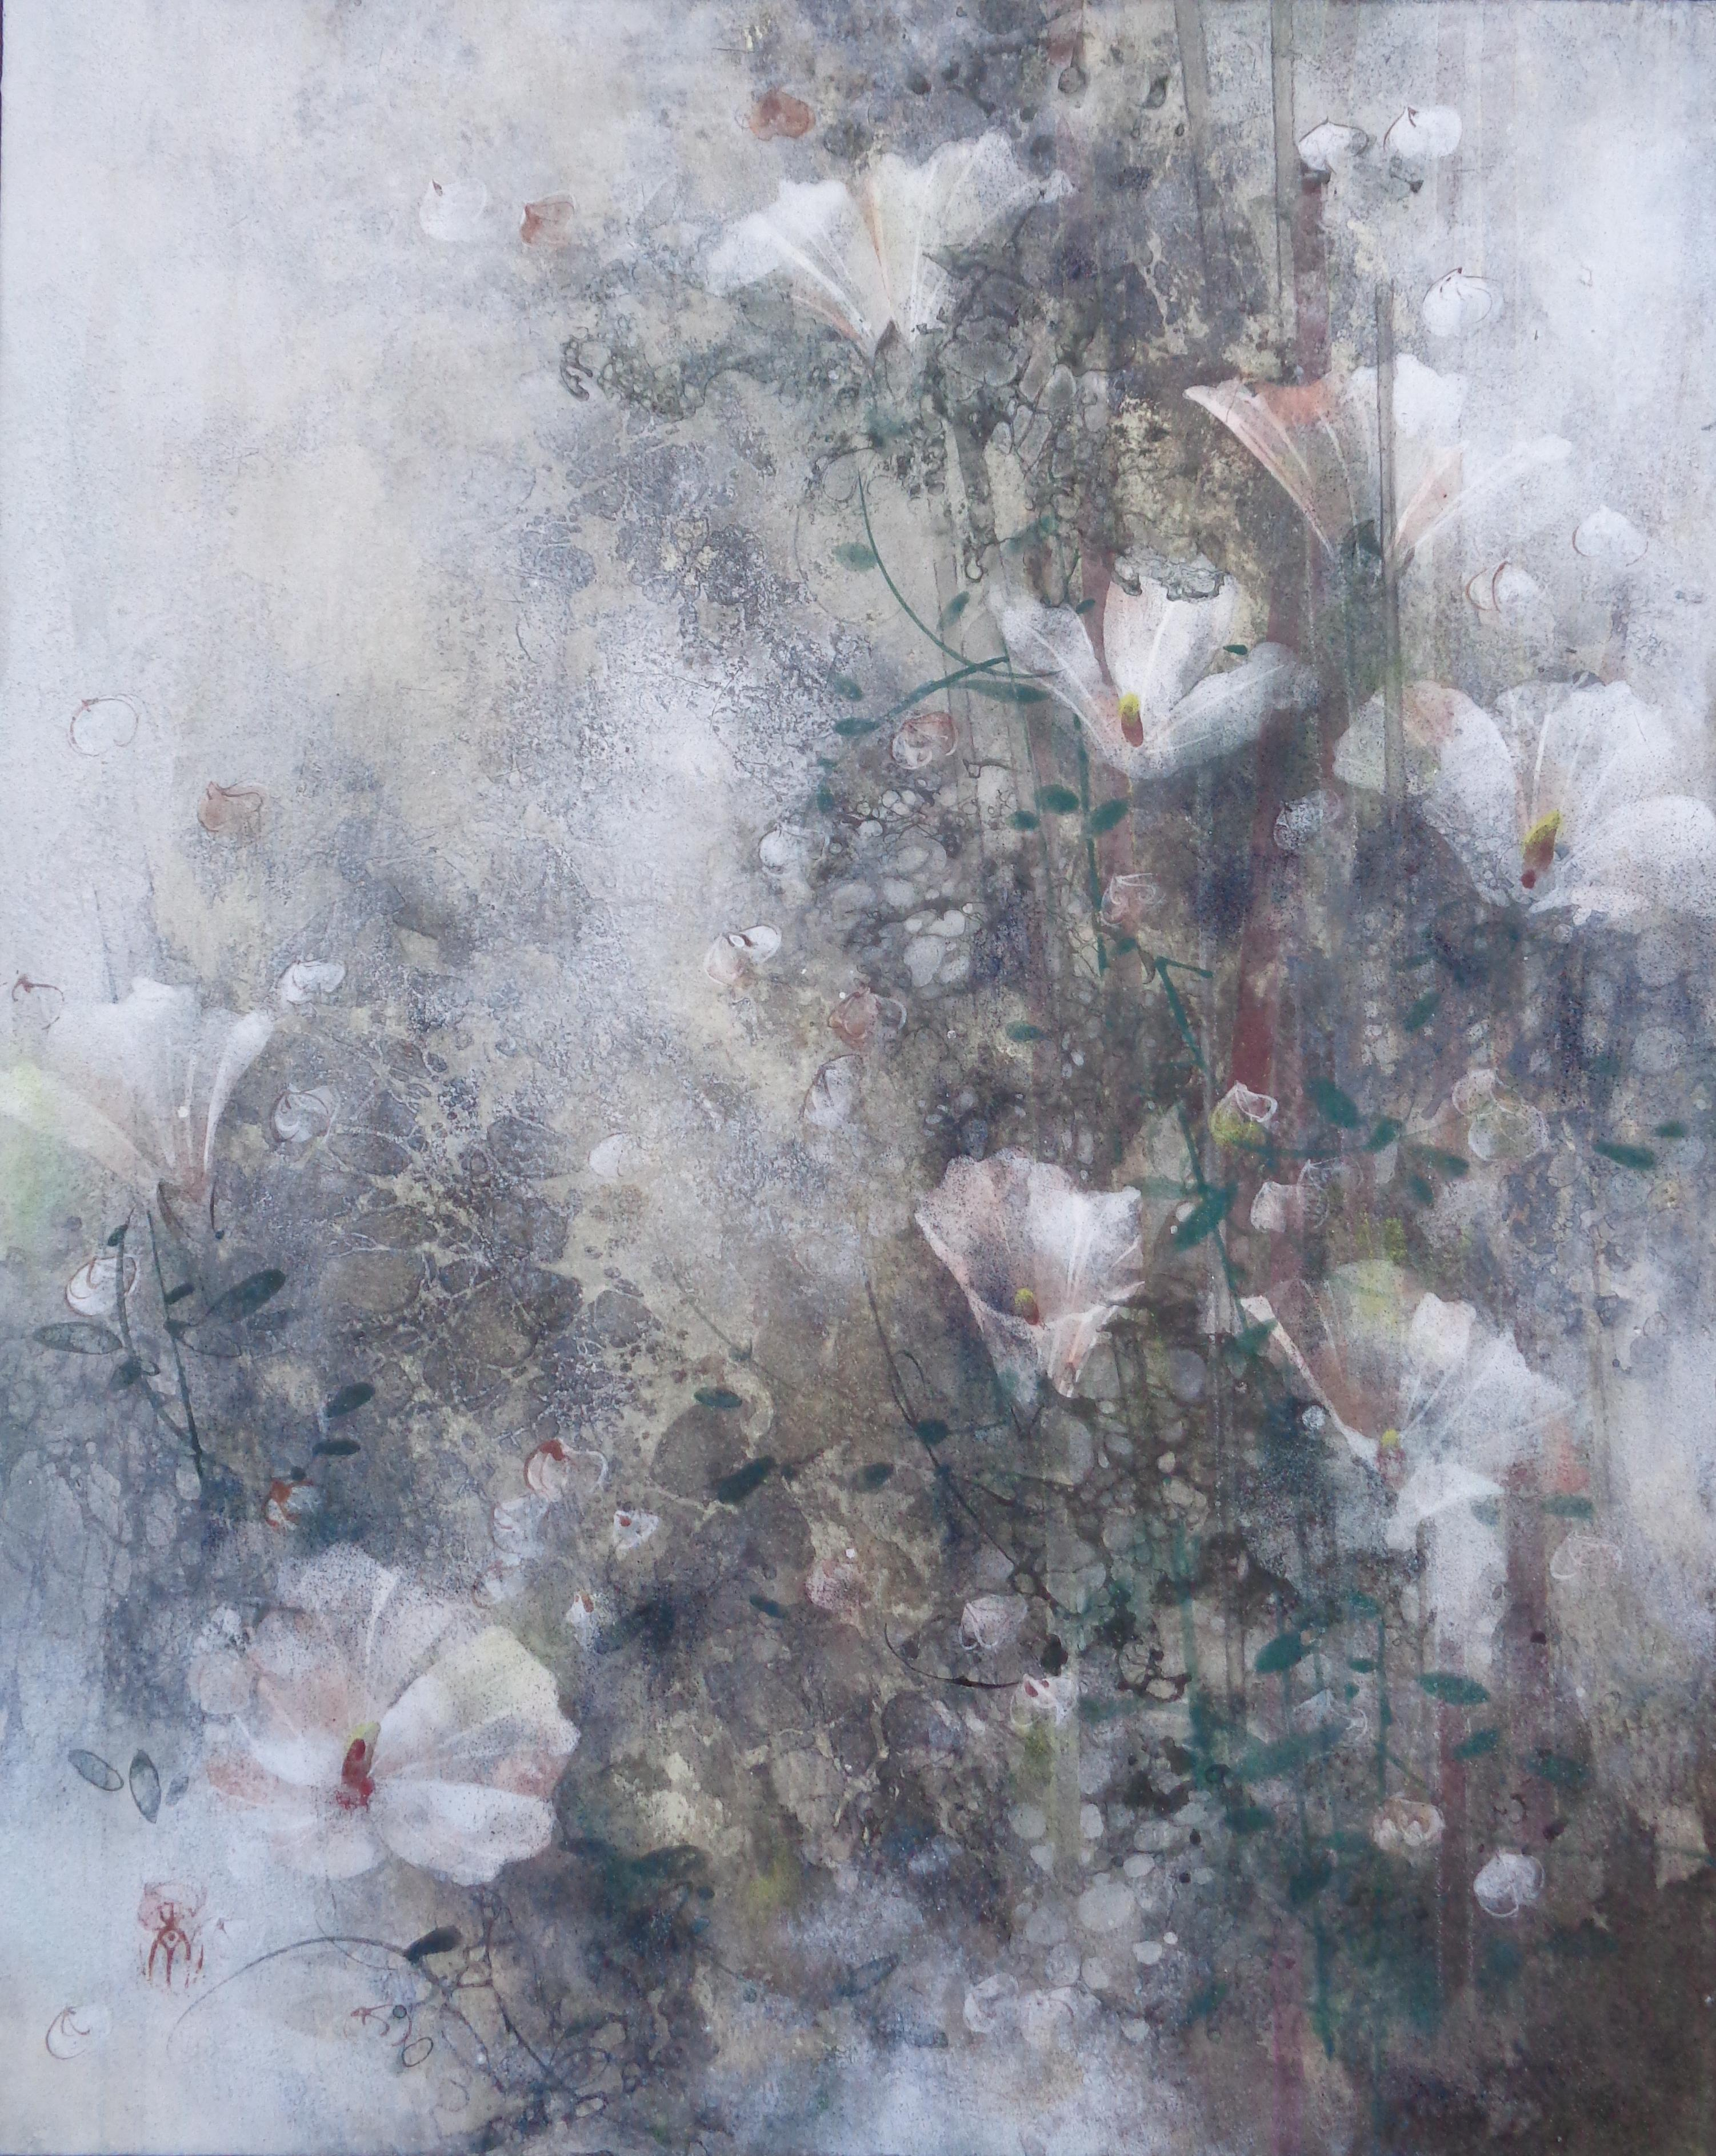 Flax Field (Linière) by Chen Yiching - Contemporary Nihonga Painting, Flora